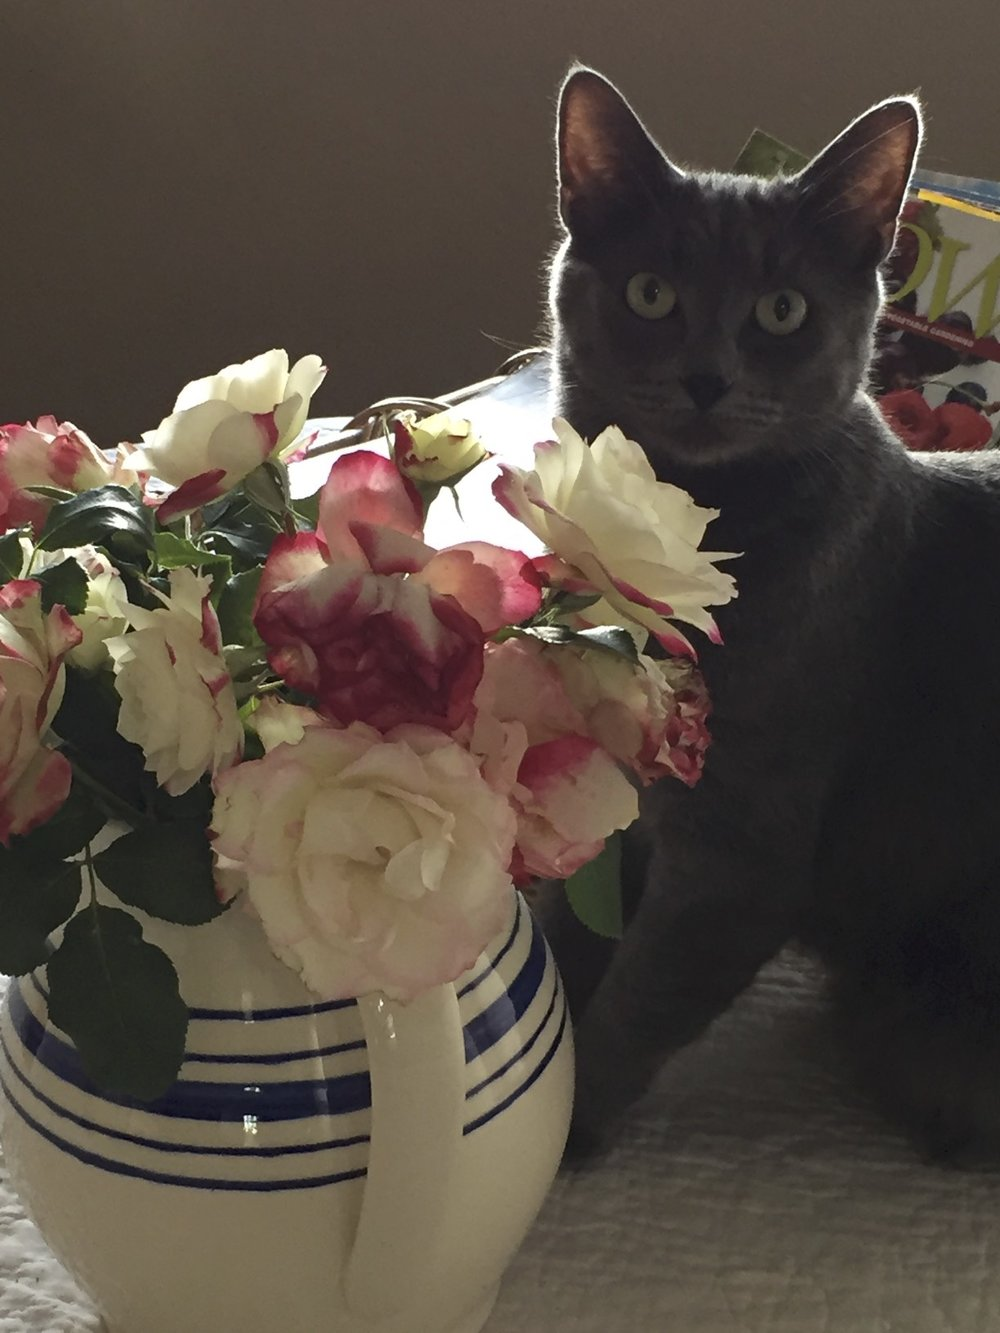 Gandalf chooses to pace his busy day of grooming, eating, and sleeping by stopping to smell the roses.